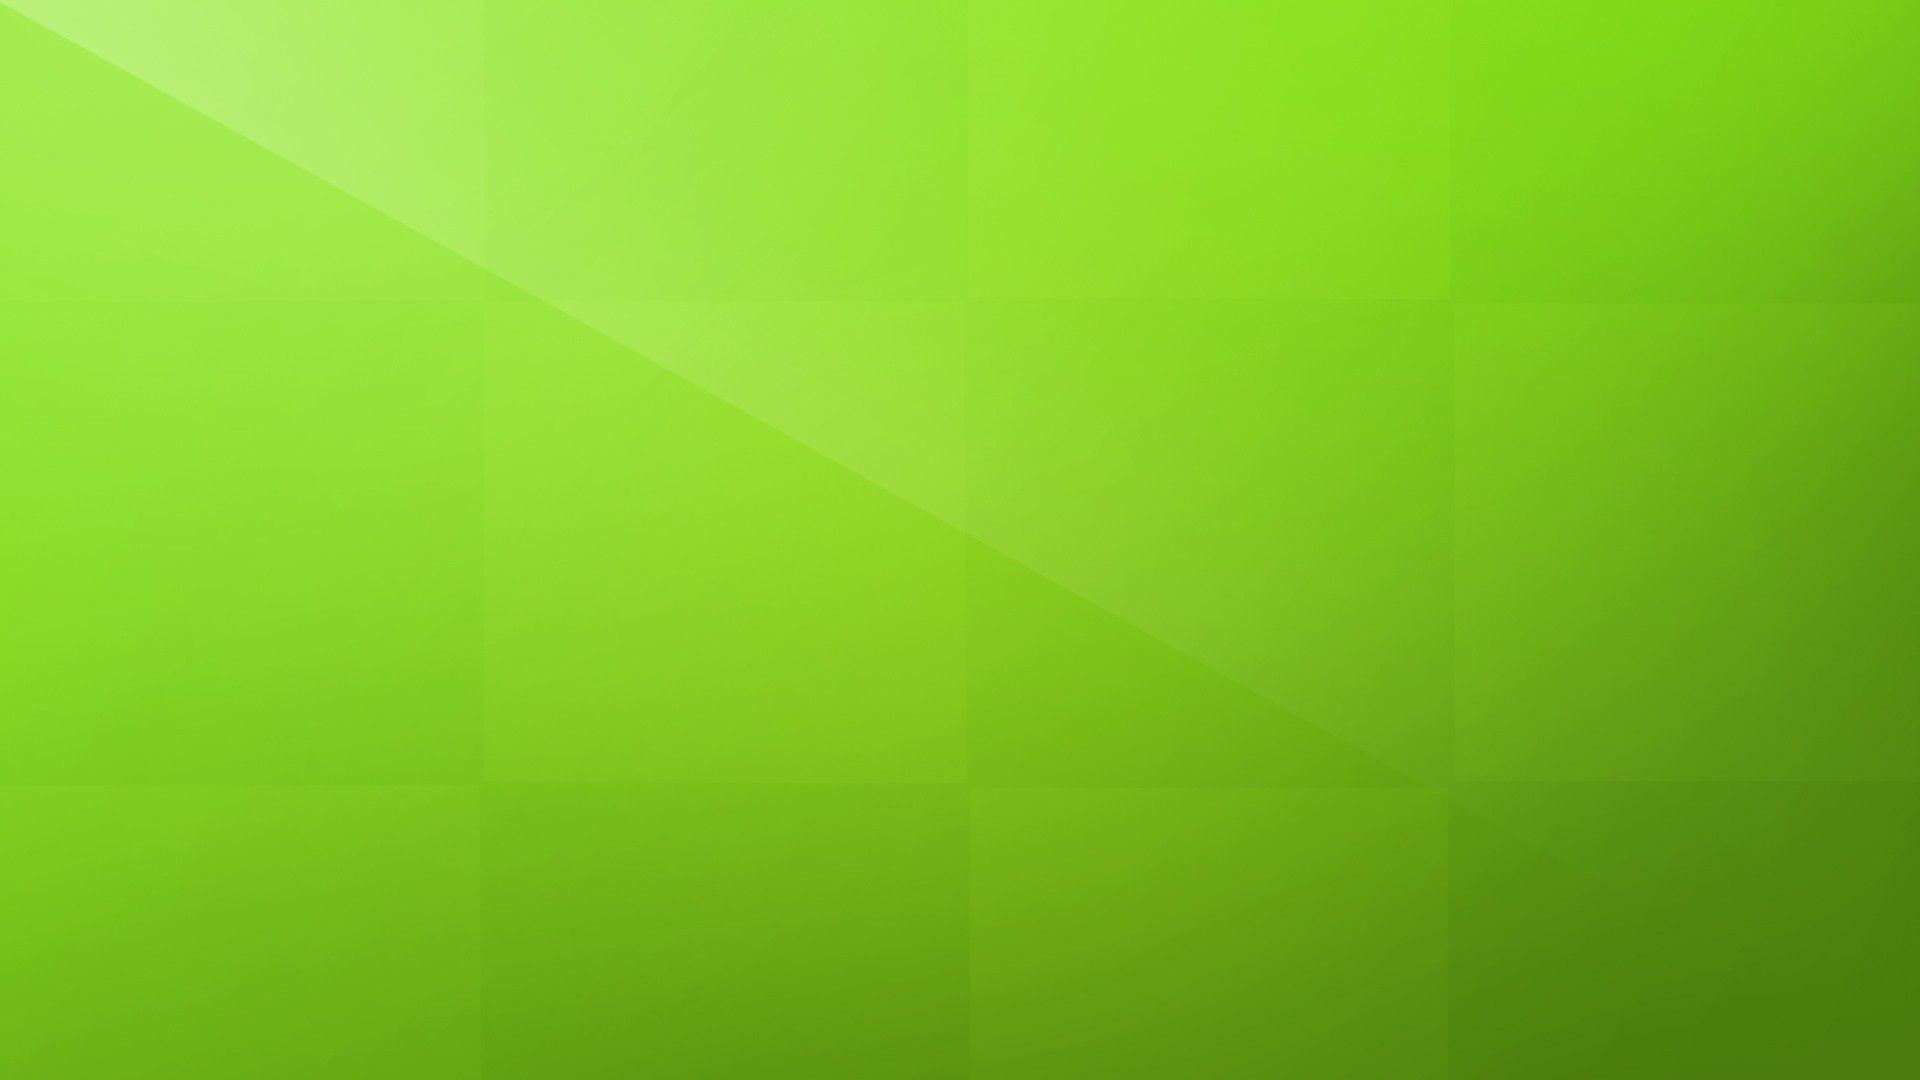 1920x1080 Bright Green Wallpaper Page 1 src · Solid Colour Backgrounds Group (63+)